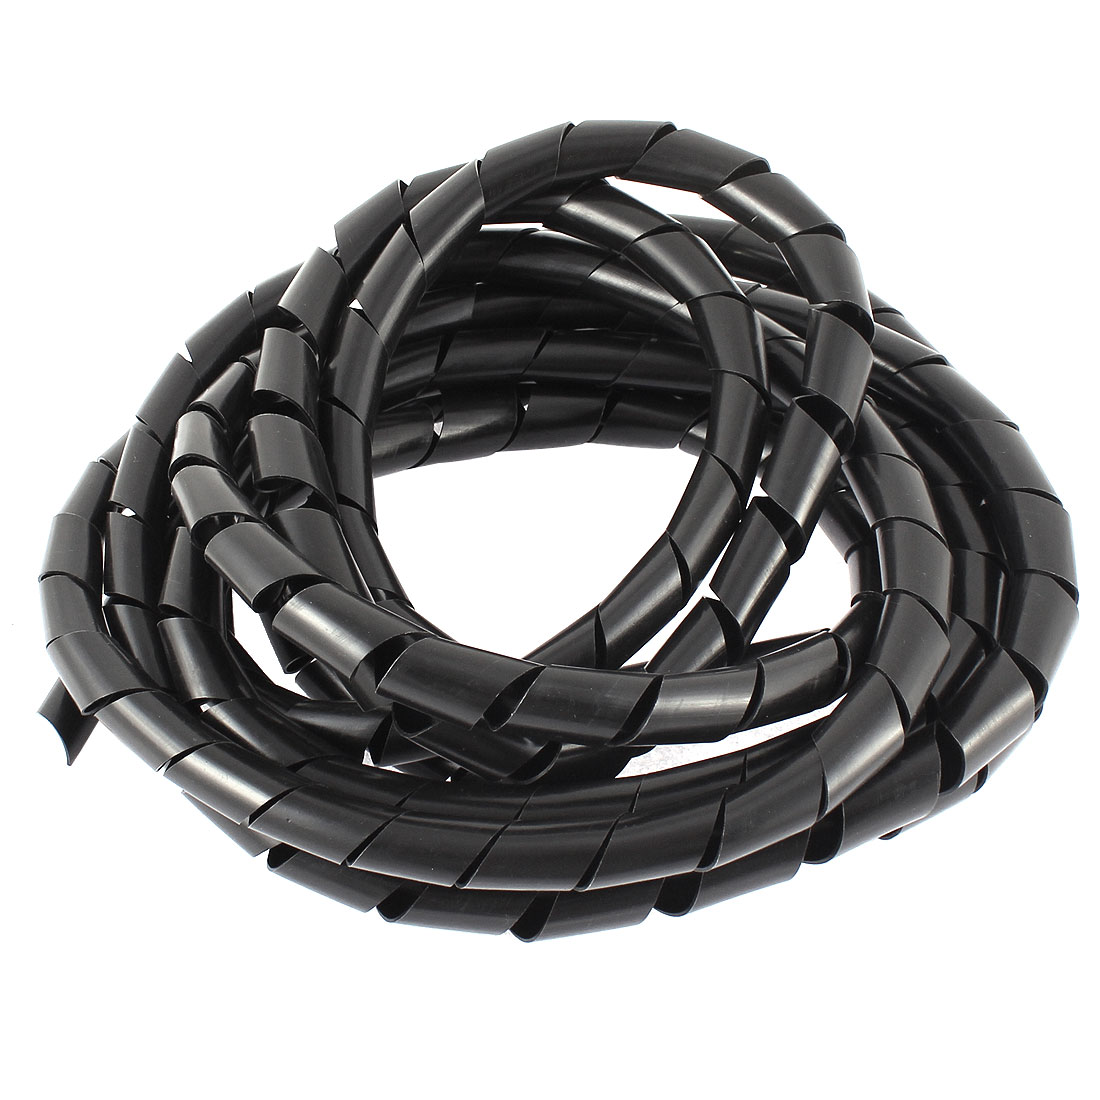 4M 13ft Long 13mm x 11mm Black Flexible Wire Spiral Wrap Sleeving Band Tube Cable Manager Protector